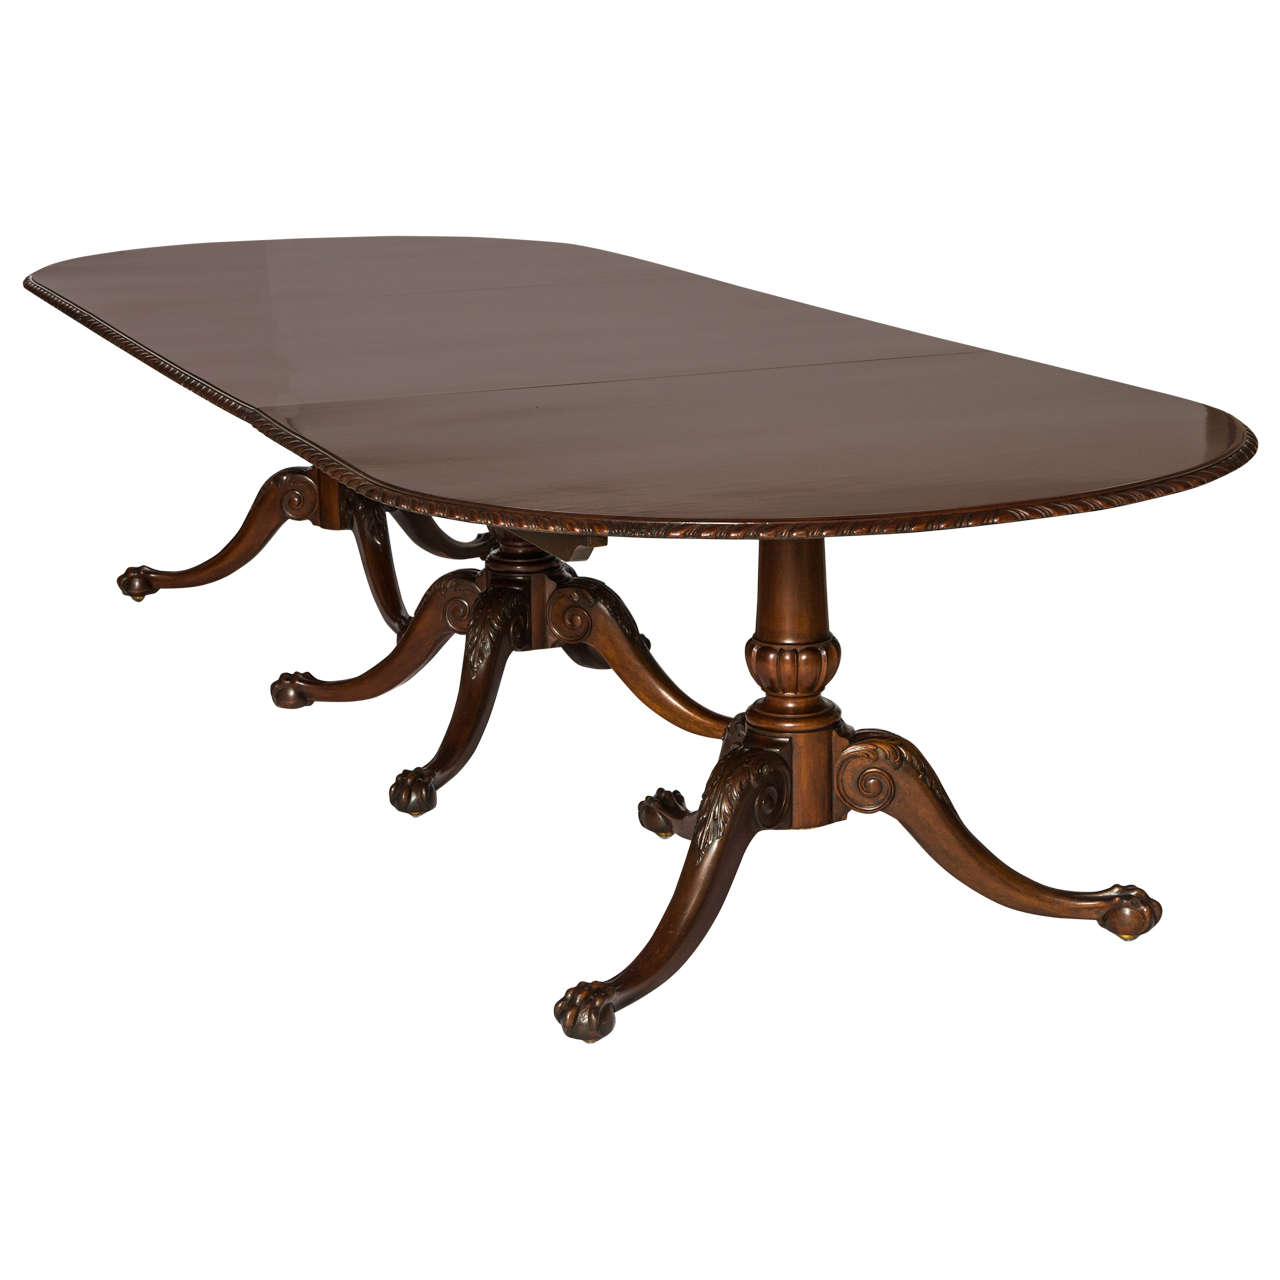 Edwardian Mahogany Triple Pedestal Dining Table by Maple  : X from www.1stdibs.com size 1280 x 1280 jpeg 60kB